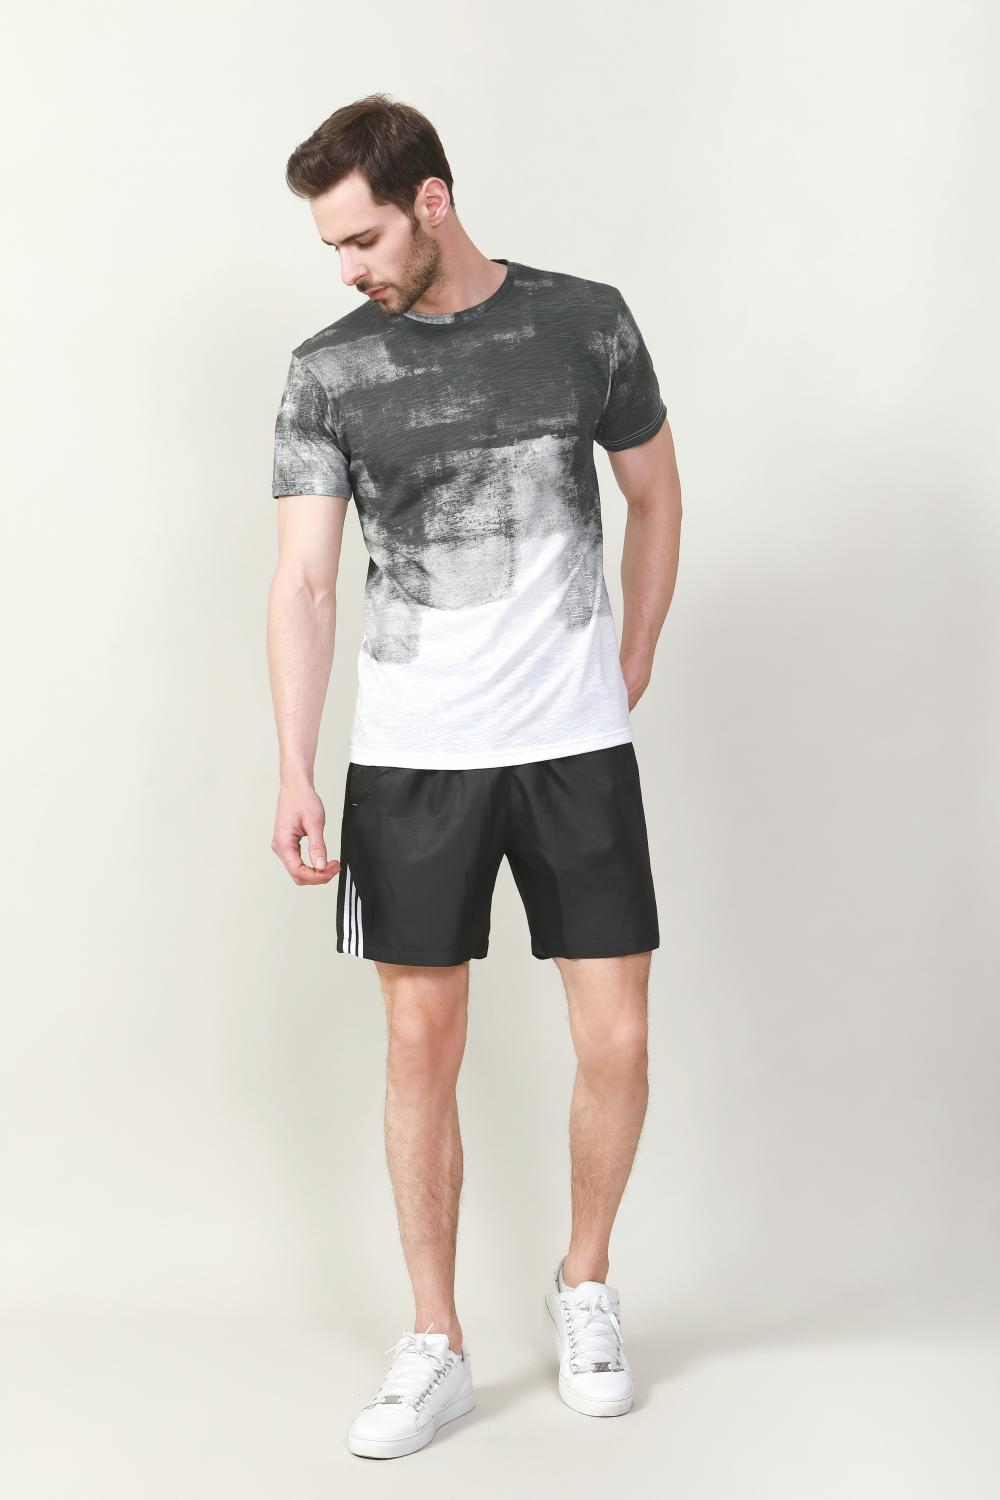 Men's poly cotton slub t-shirt